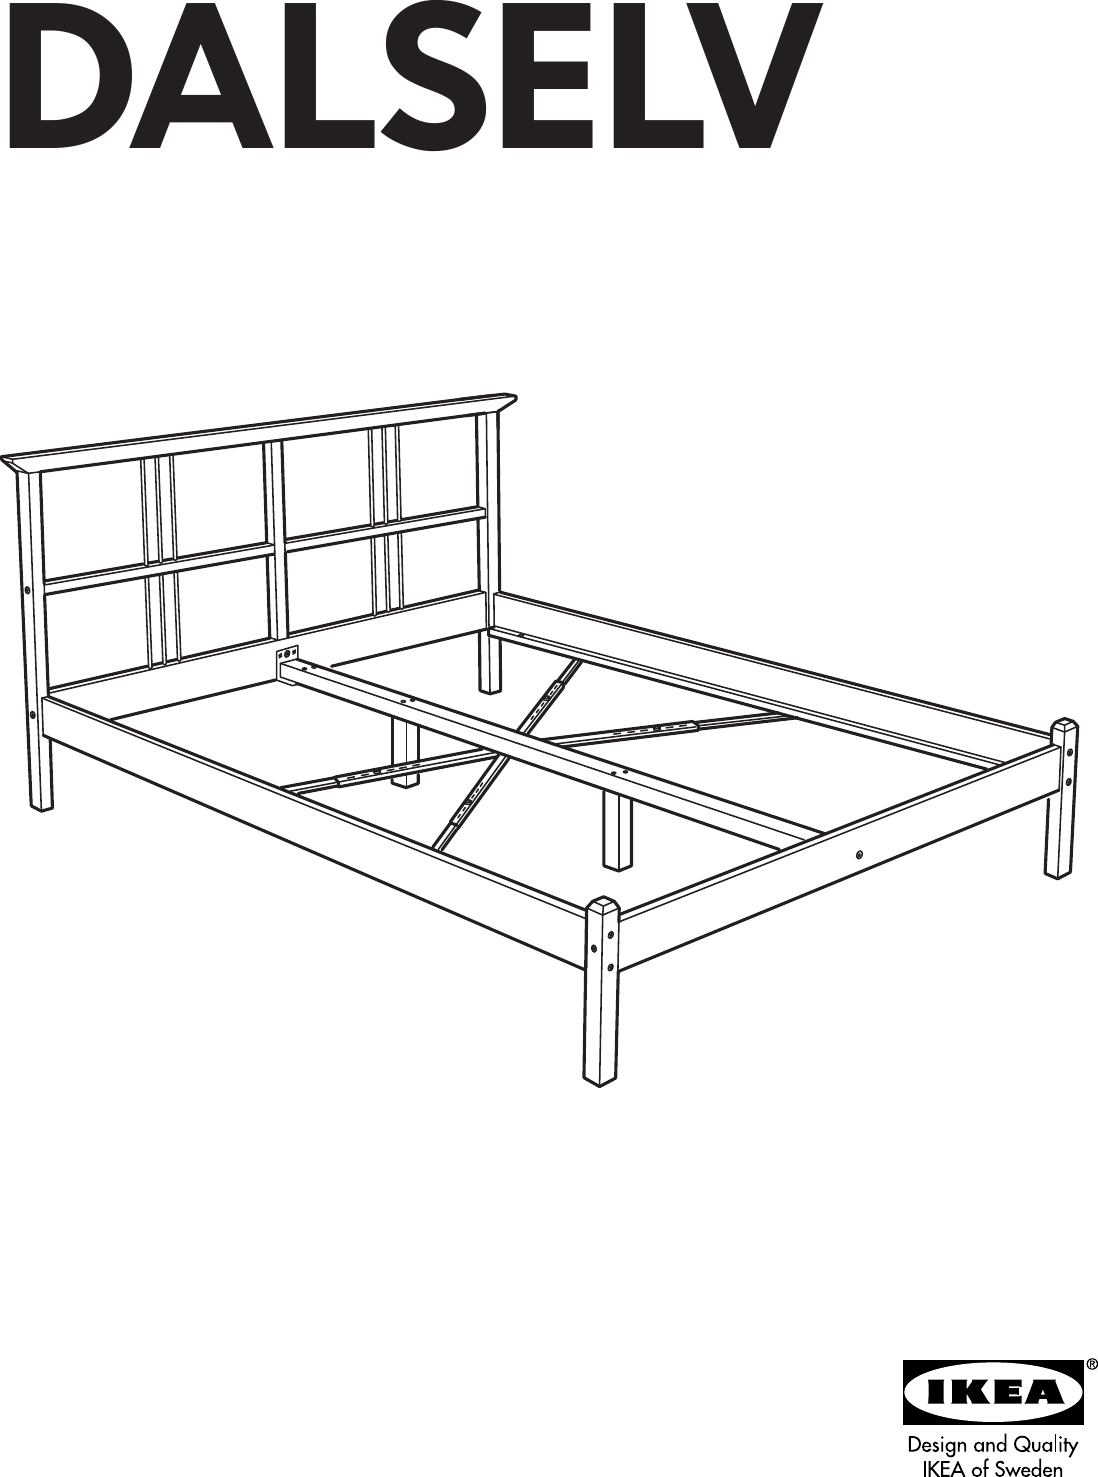 Ikea Dalselv Bed Frame Full Double Assembly Instruction